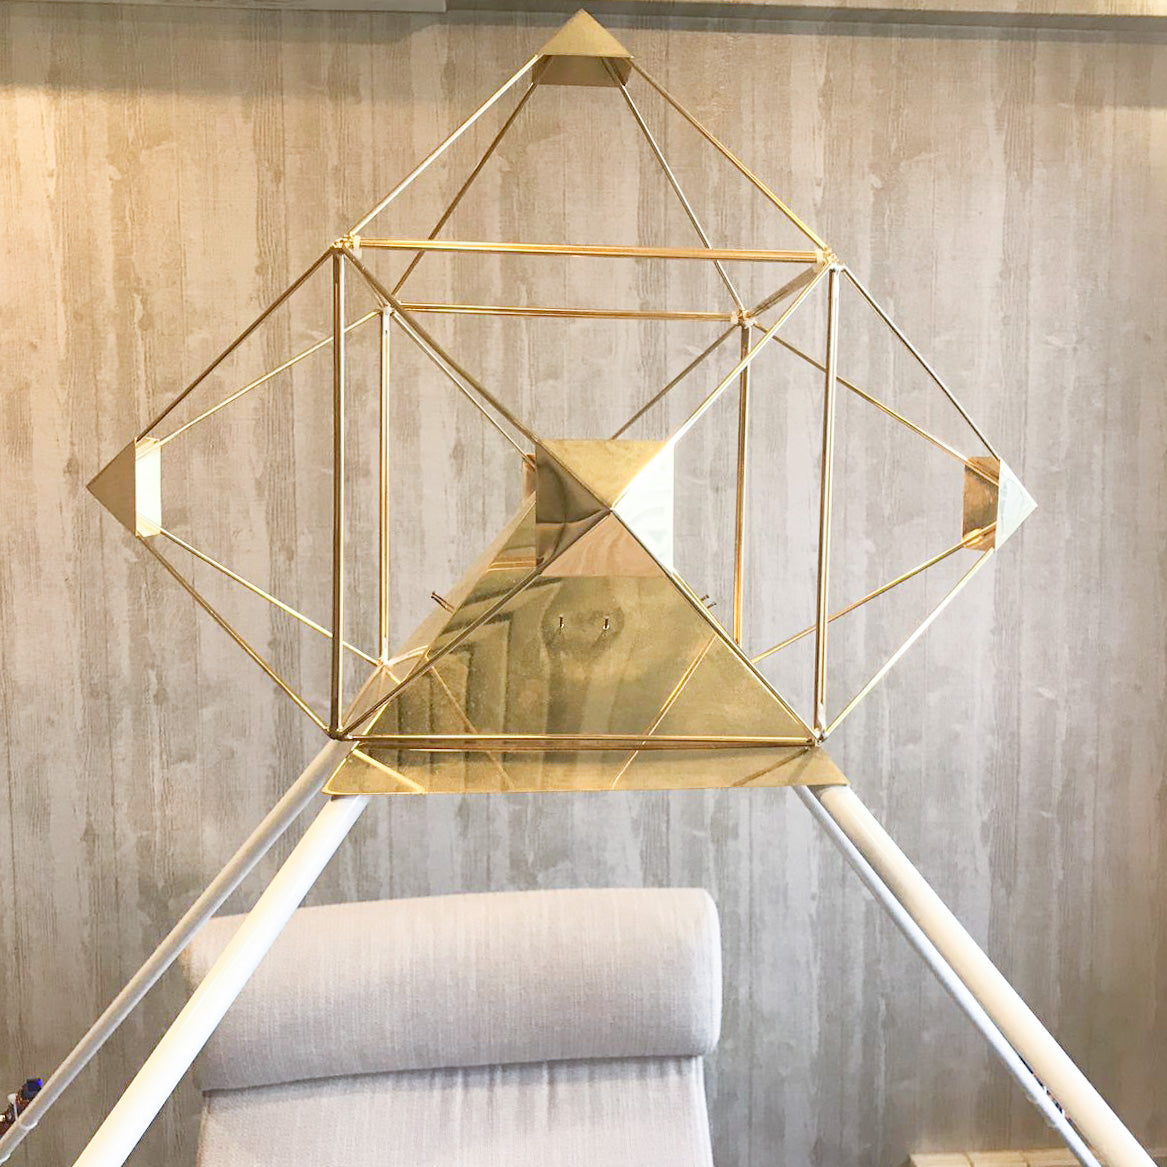 SALE! 1 Set Only - 7' Crystal Ascension Meditation Pyramid System